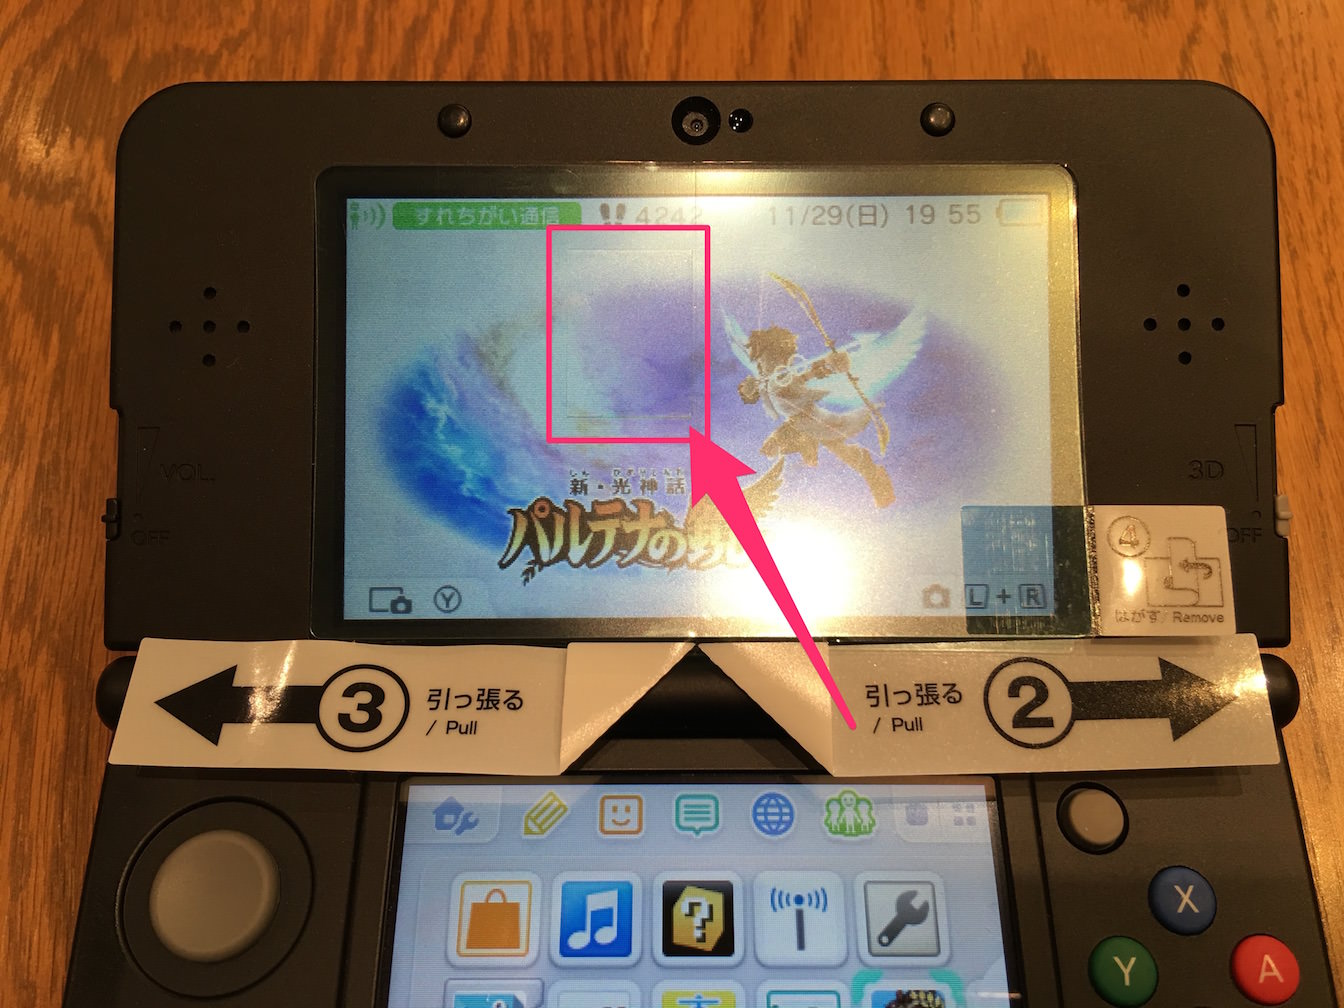 Review of zero pita filter for new nintendo 3ds 6